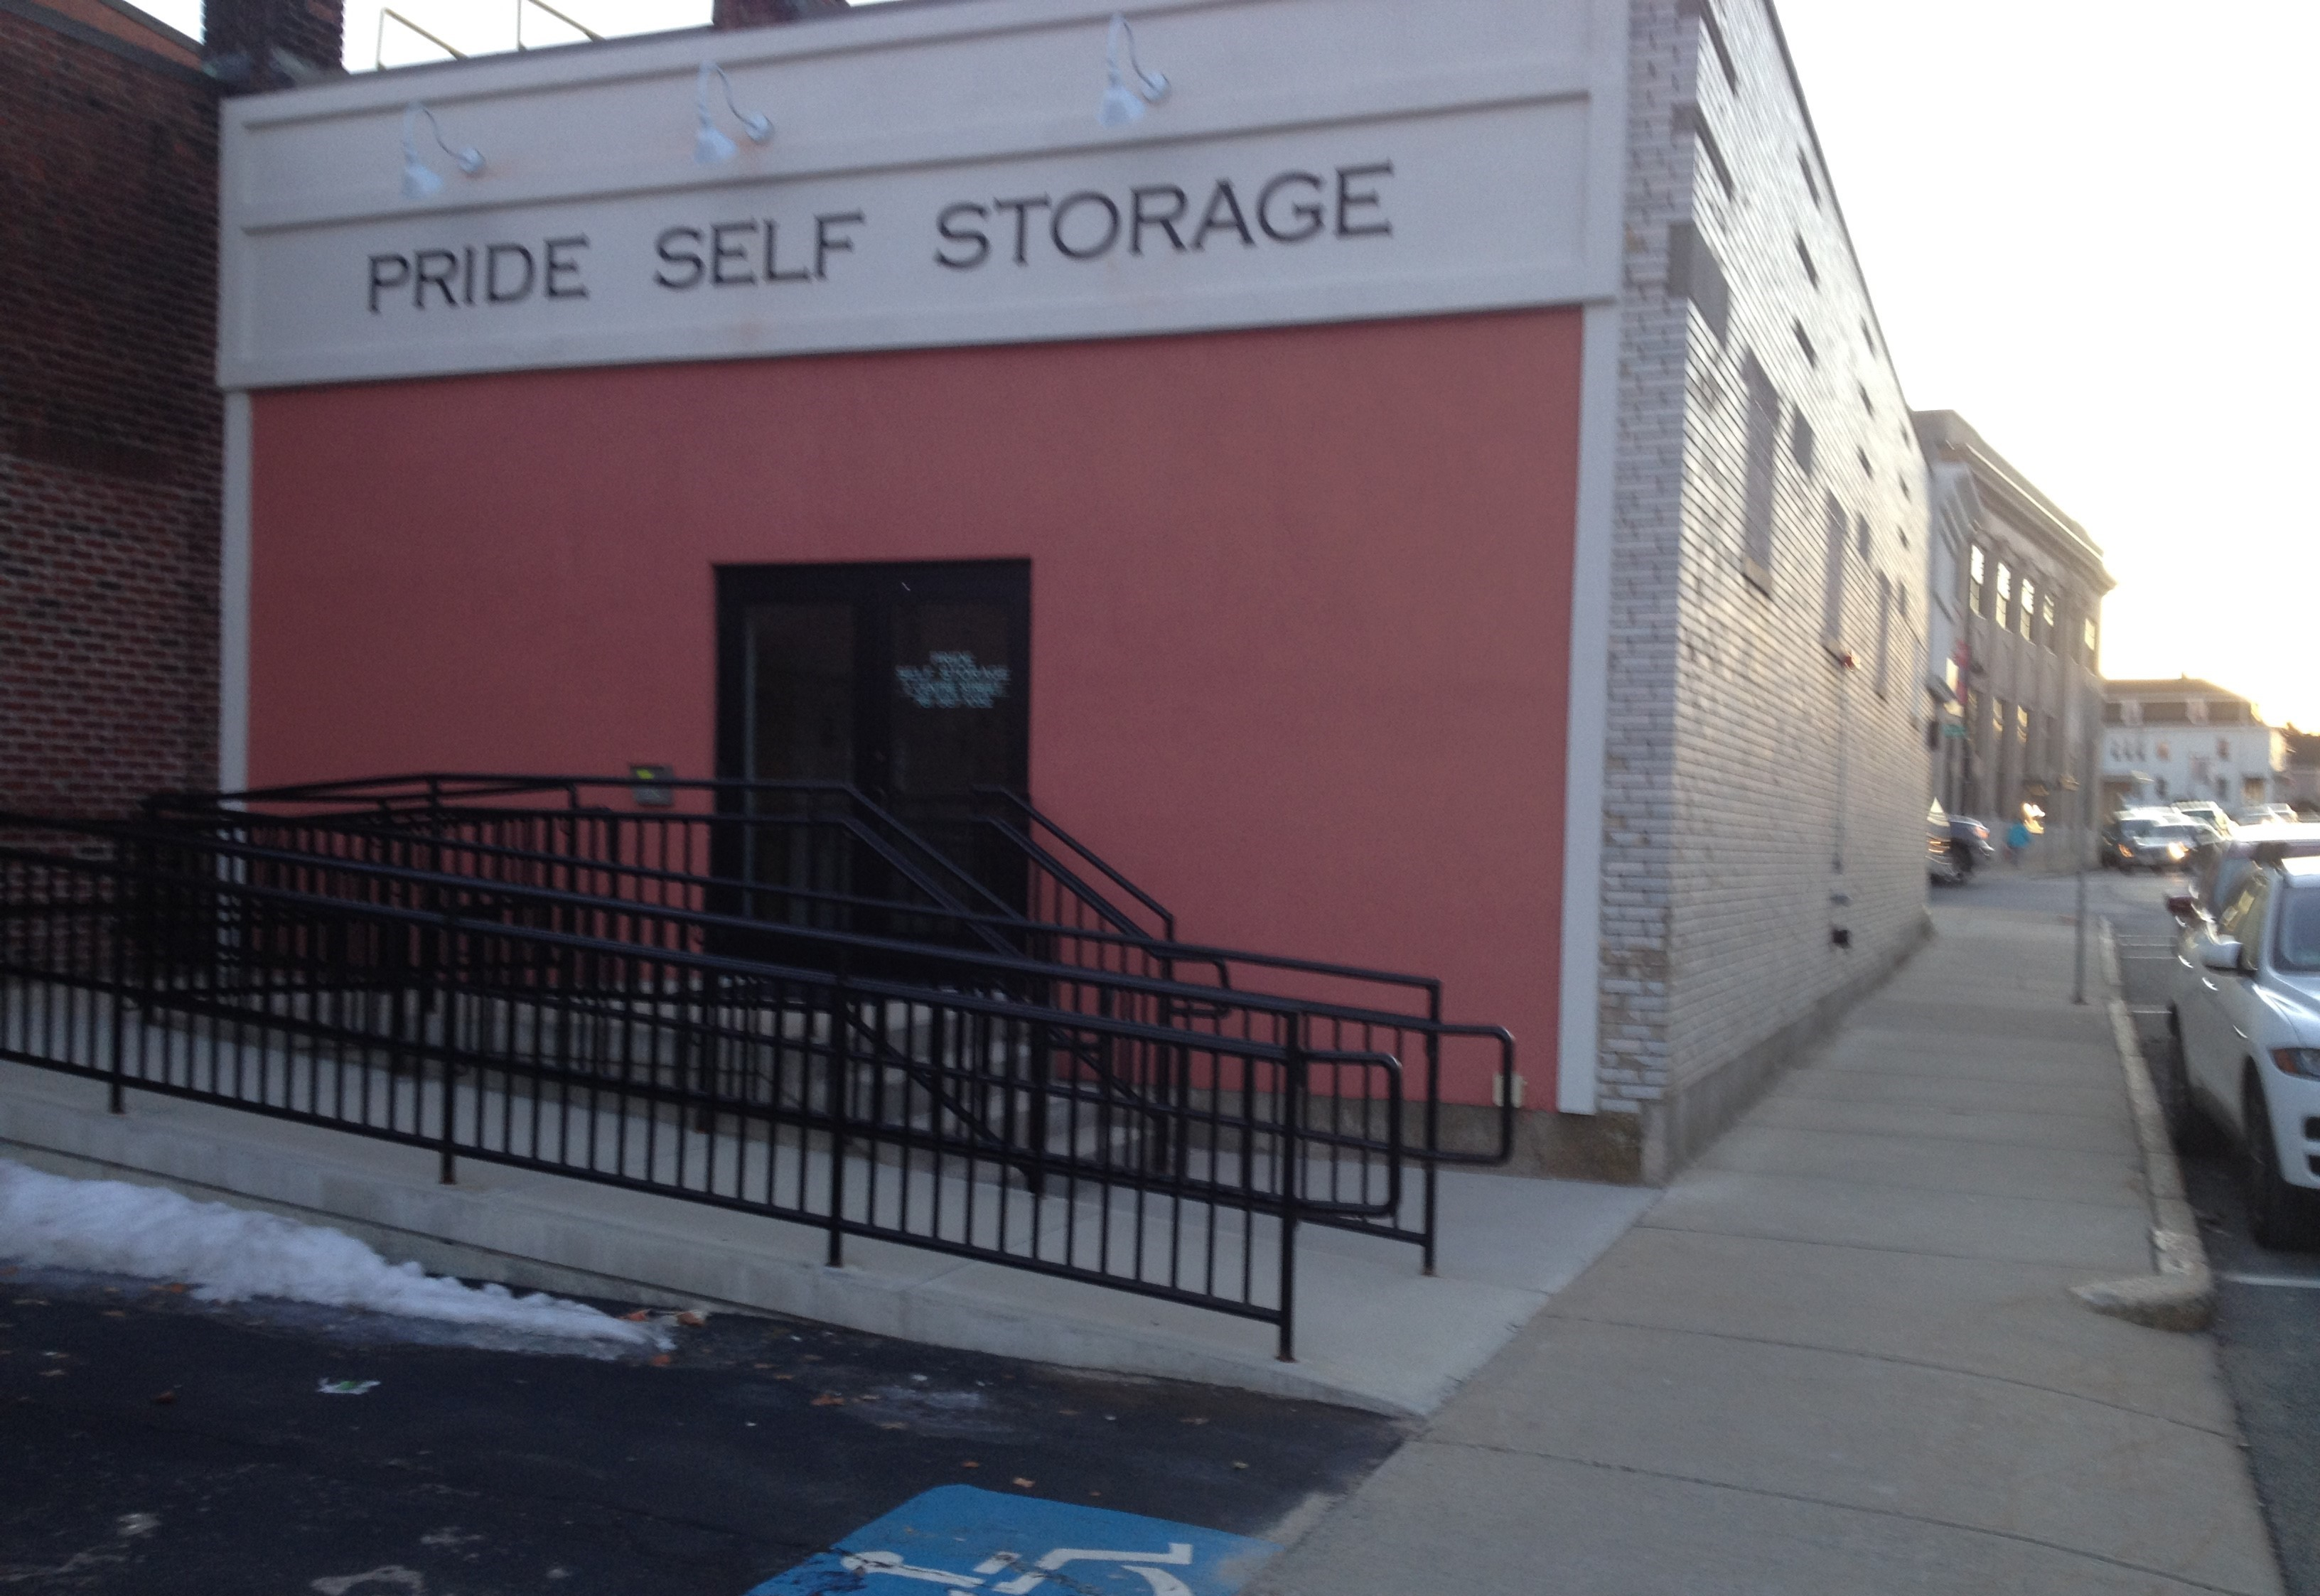 Pride Self Storage in Wakefield